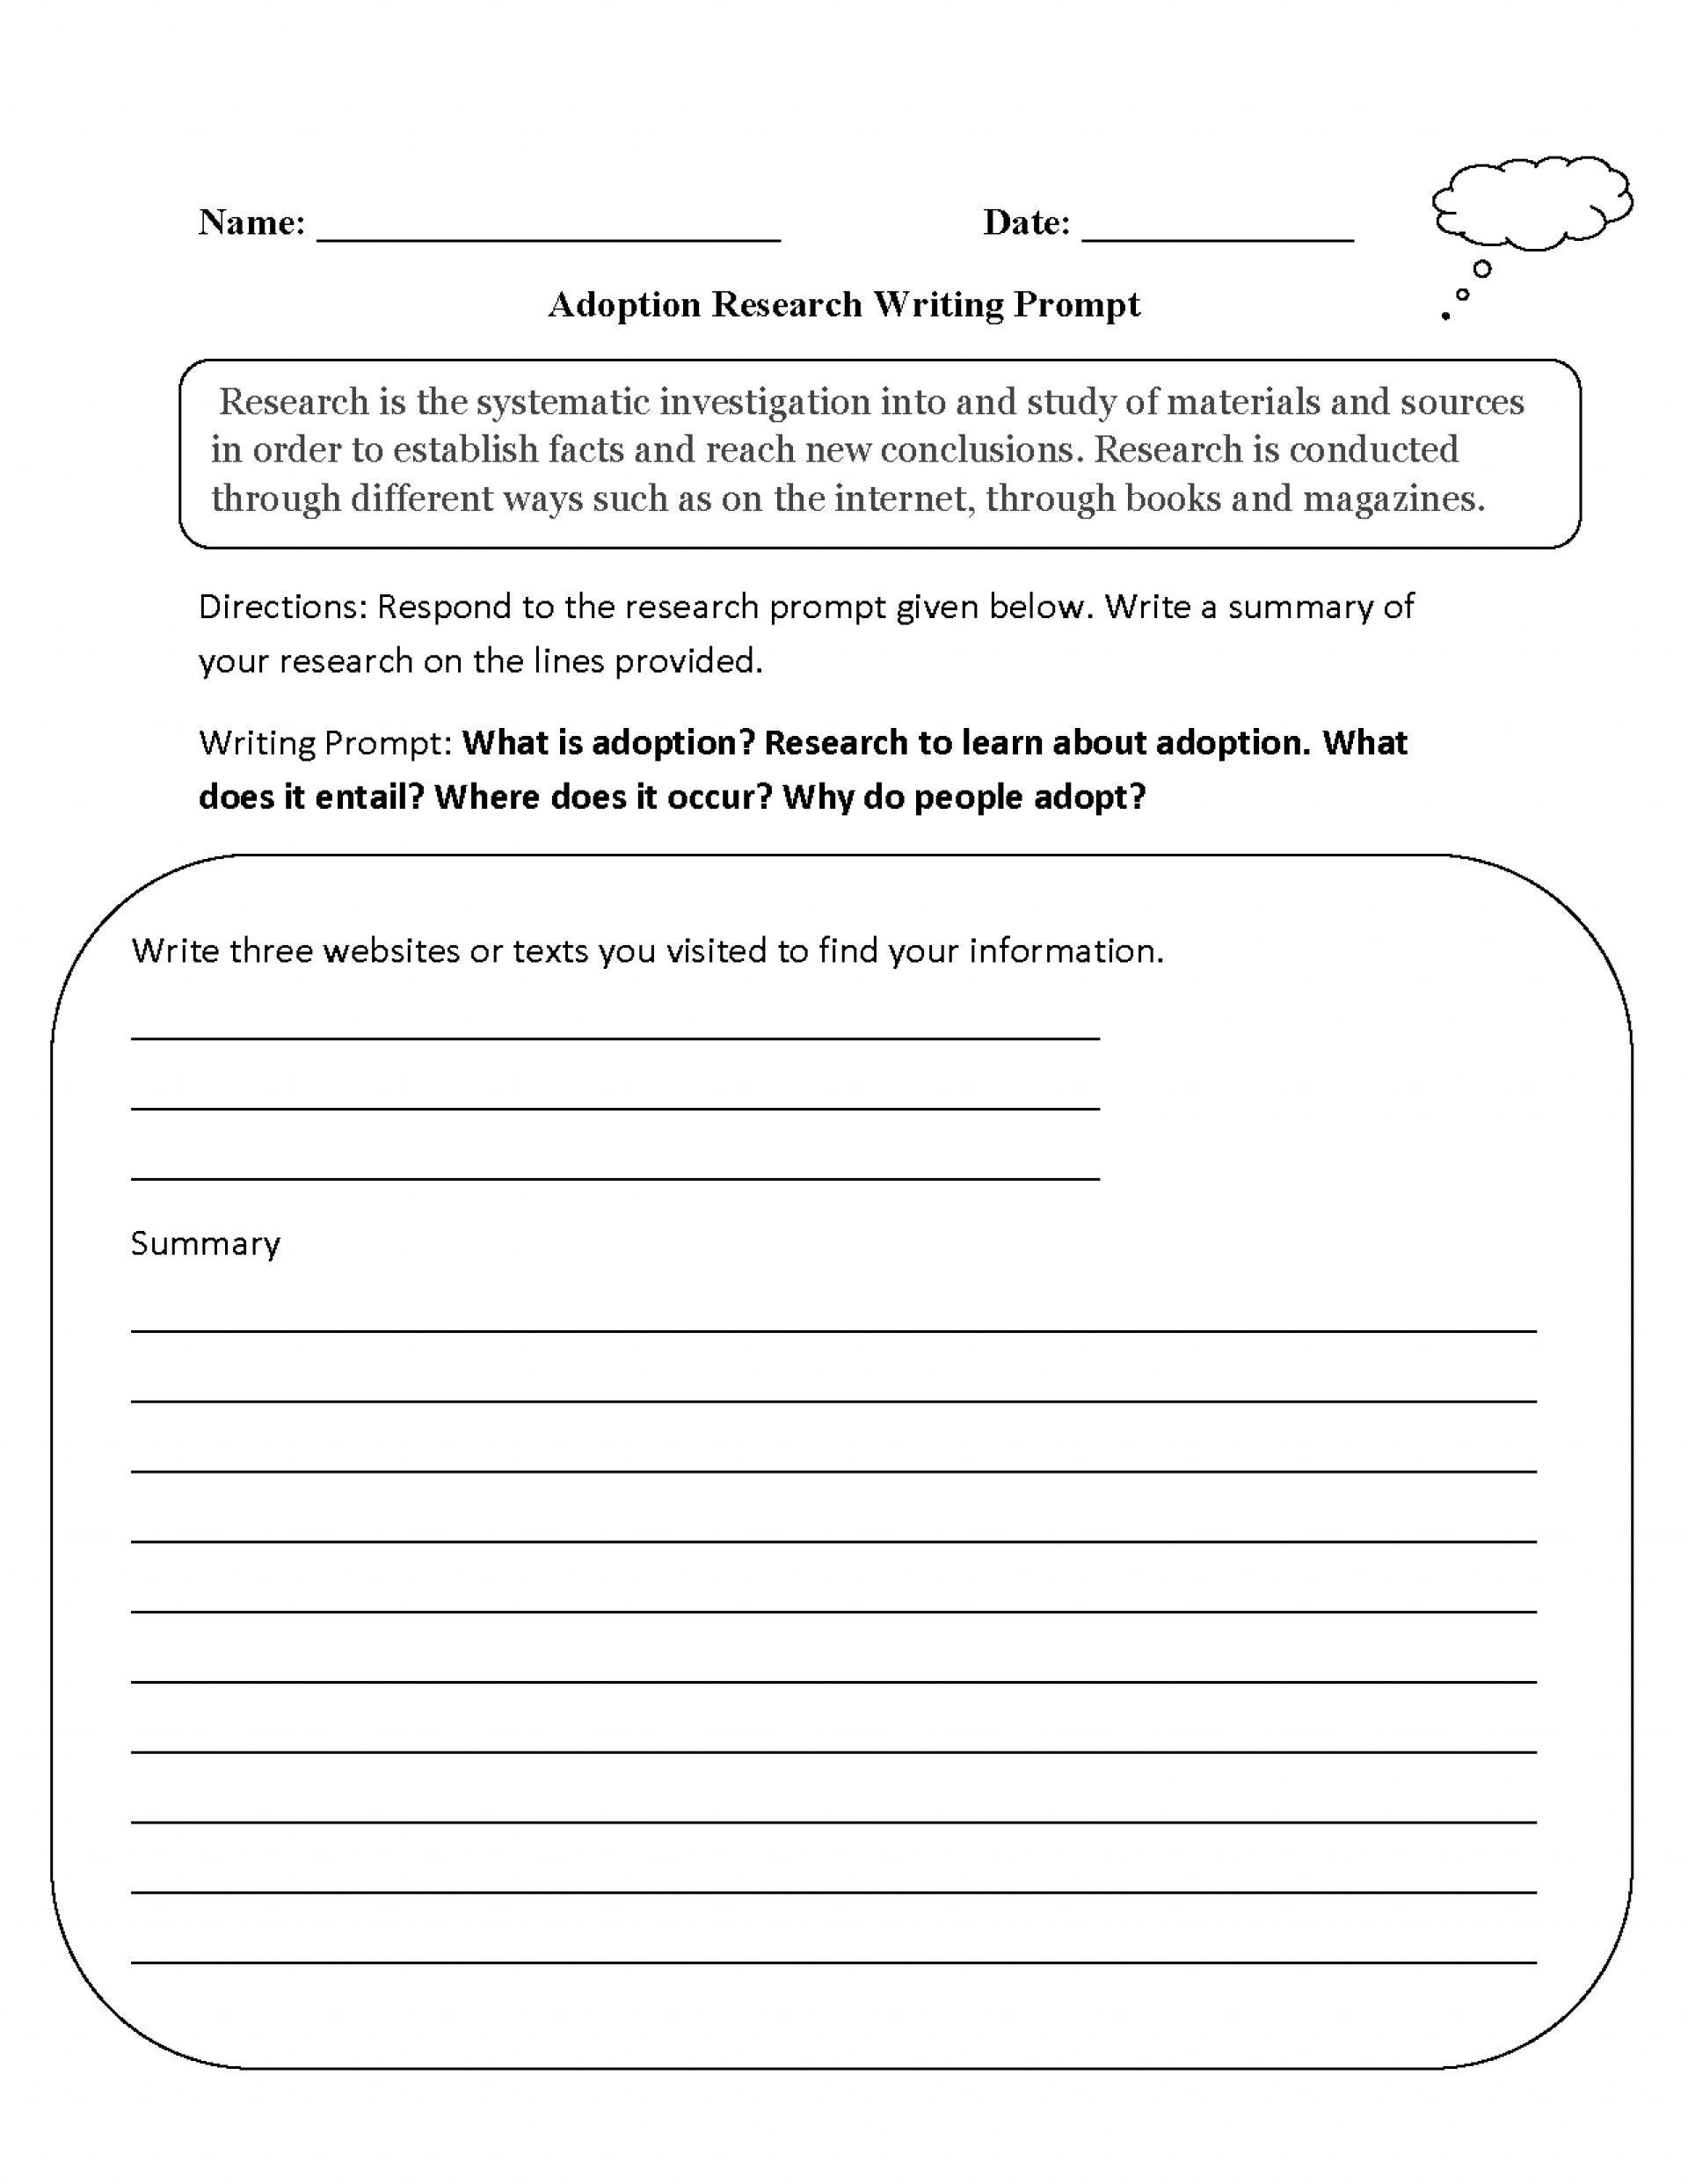 013 6th Grade Essay Topics Example Persuasive Personal For Graders Research Adoption Work Argumentative Prompts Students Speech Surprising Reflective Narrative Writing Science 1920